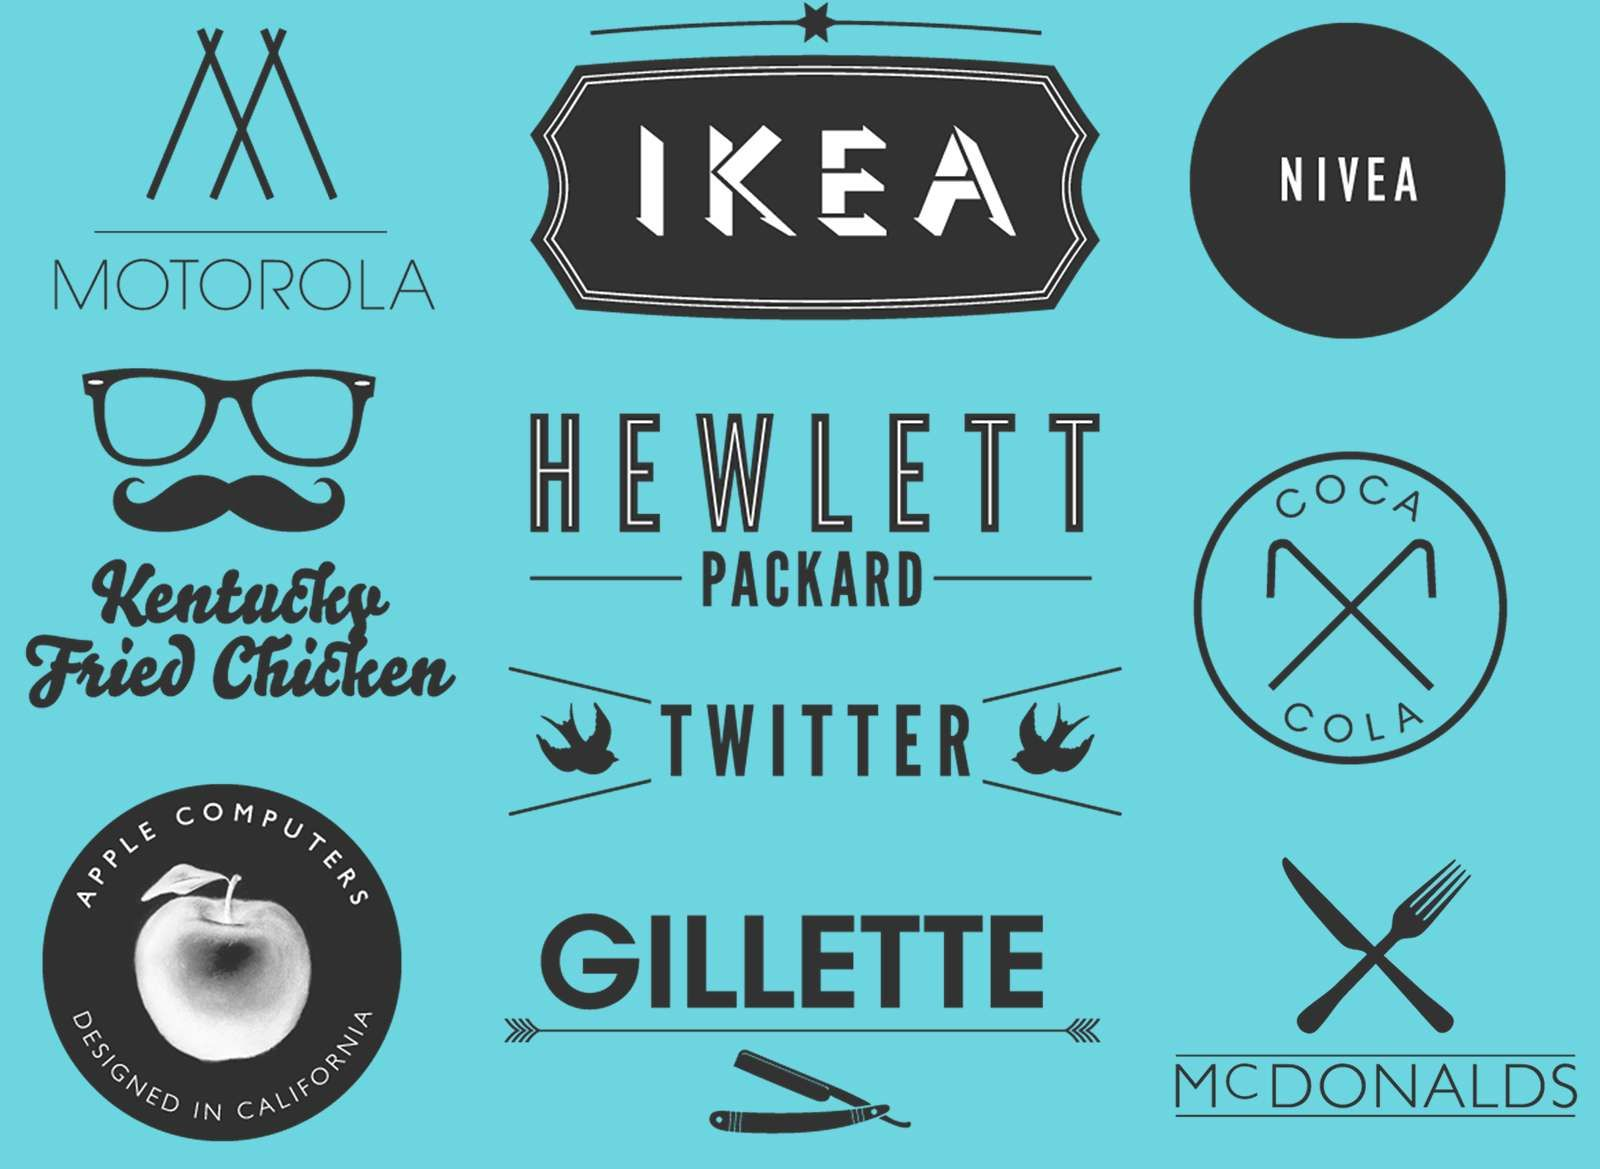 17 Best images about Hipster Logos on Pinterest | Logos, Hipster ...